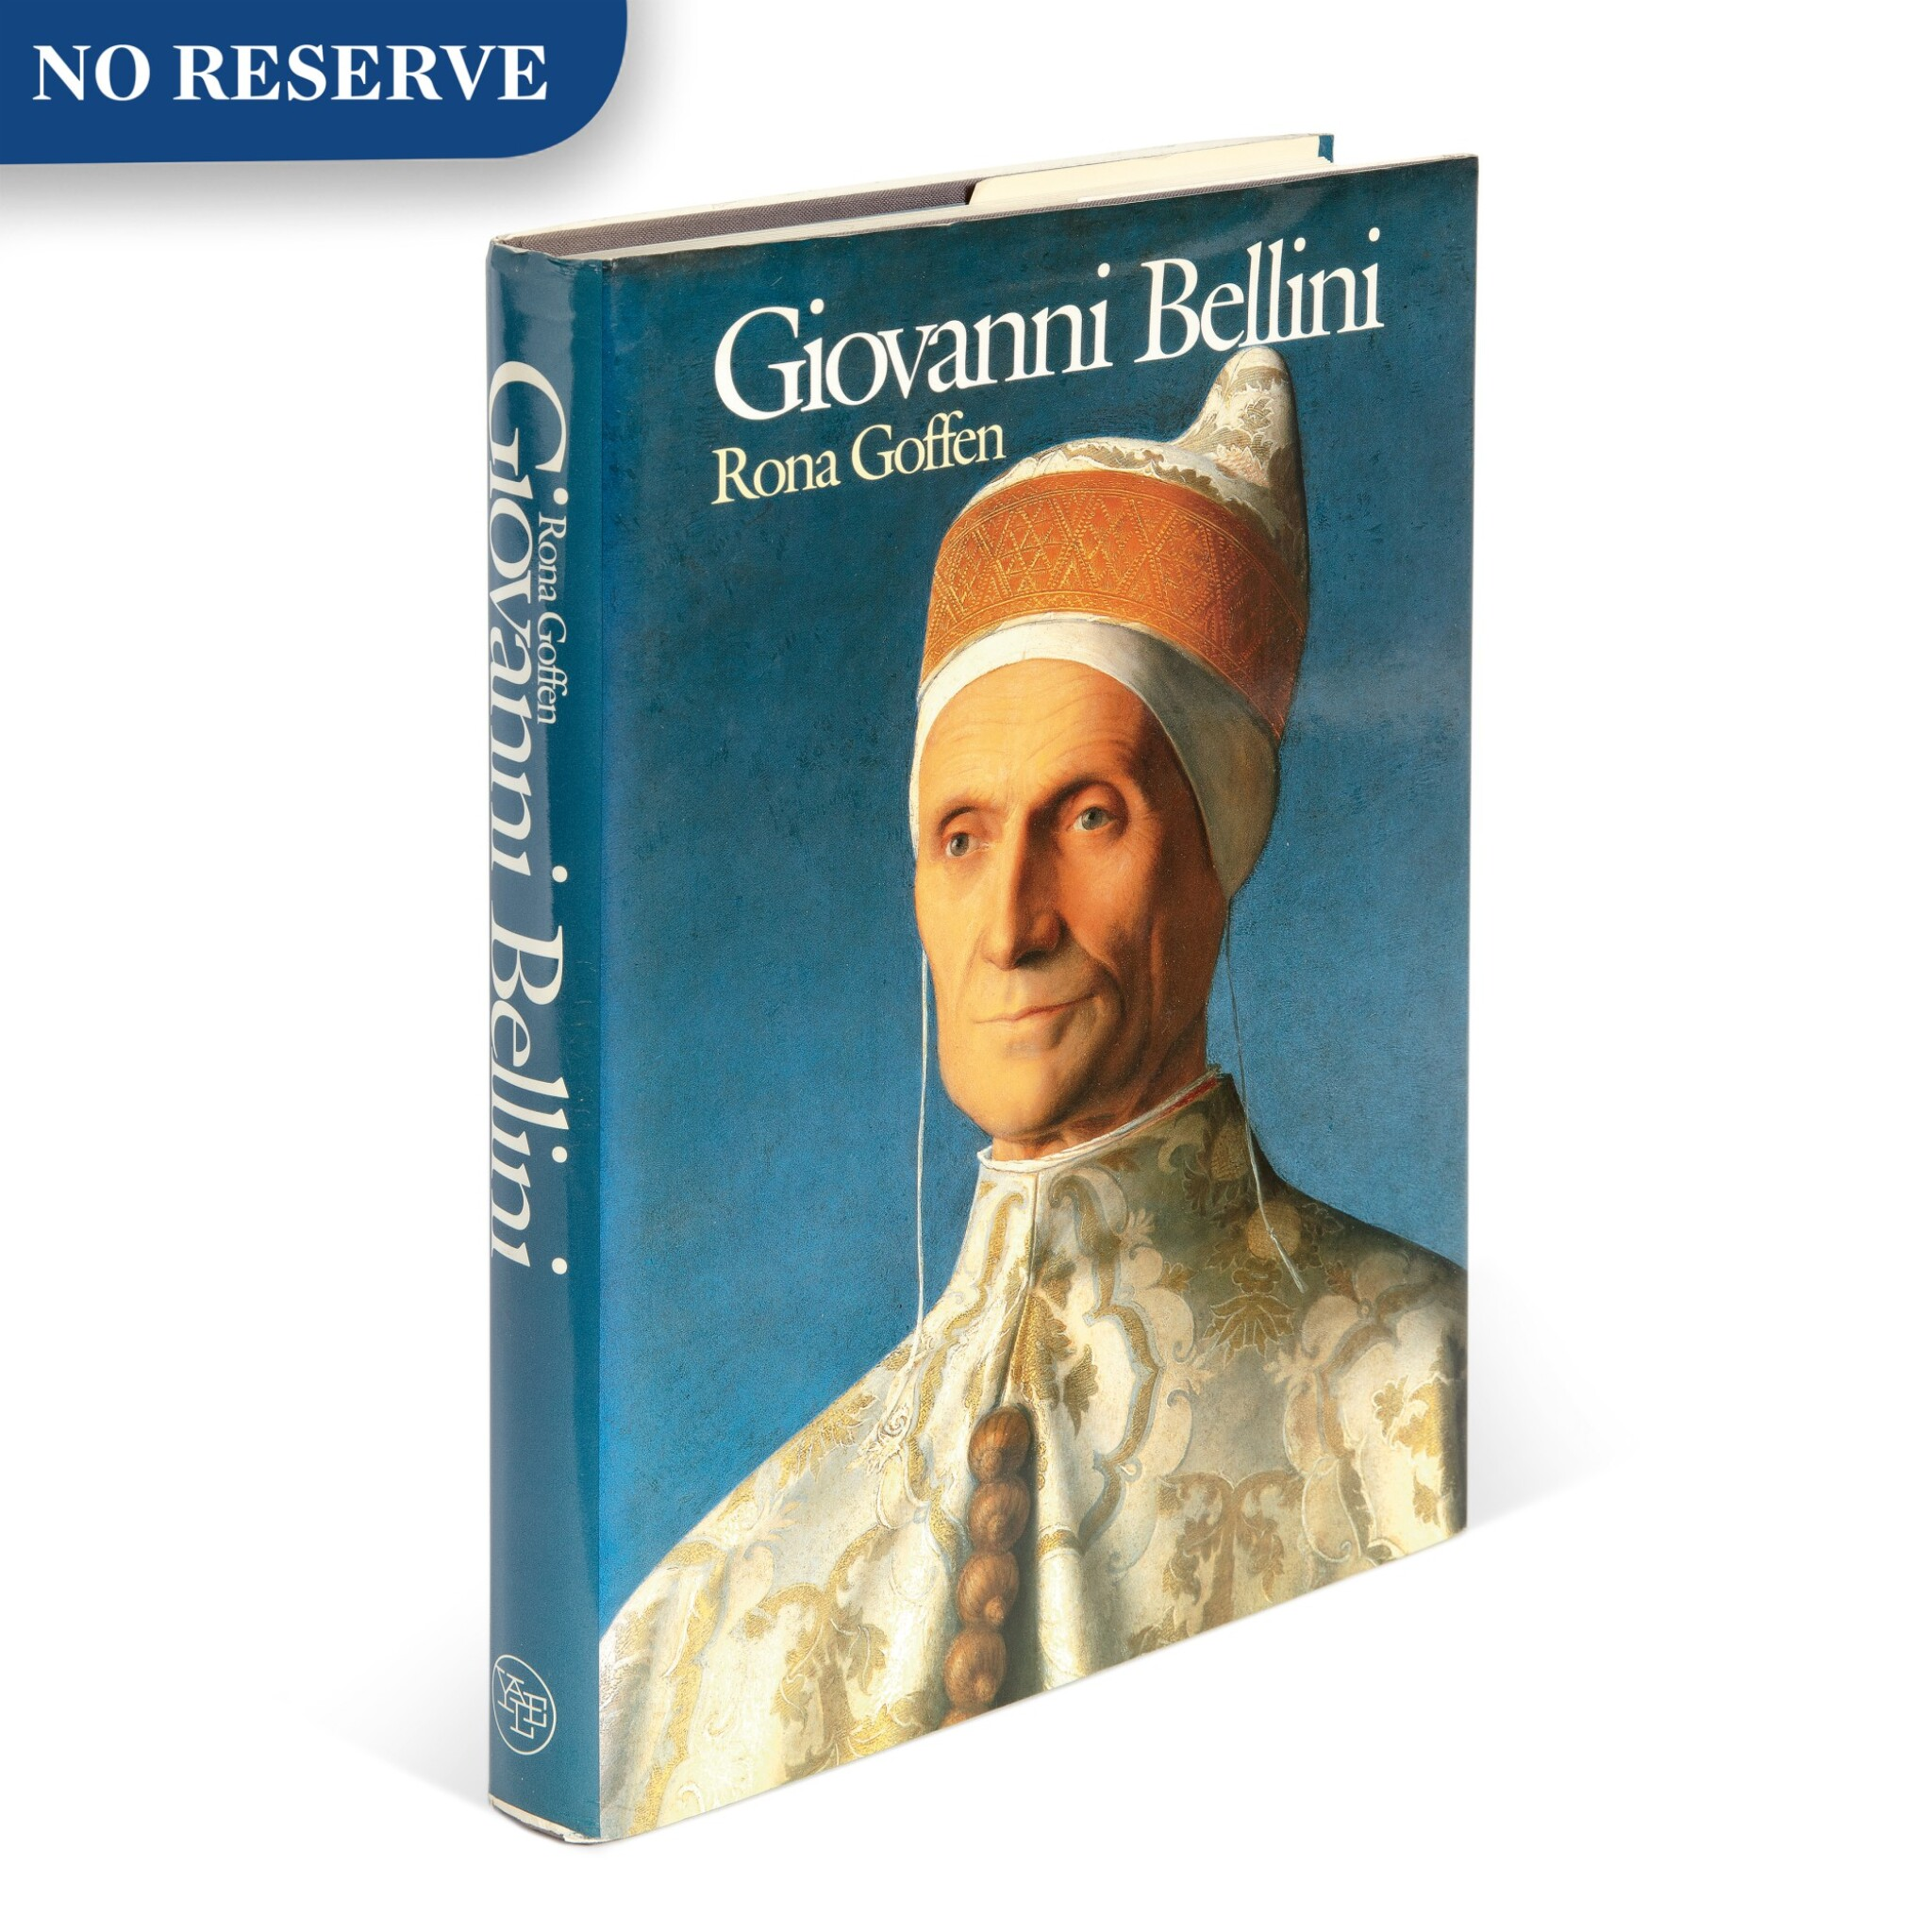 A Selection of Books on Giovanni and Jacopo Bellini